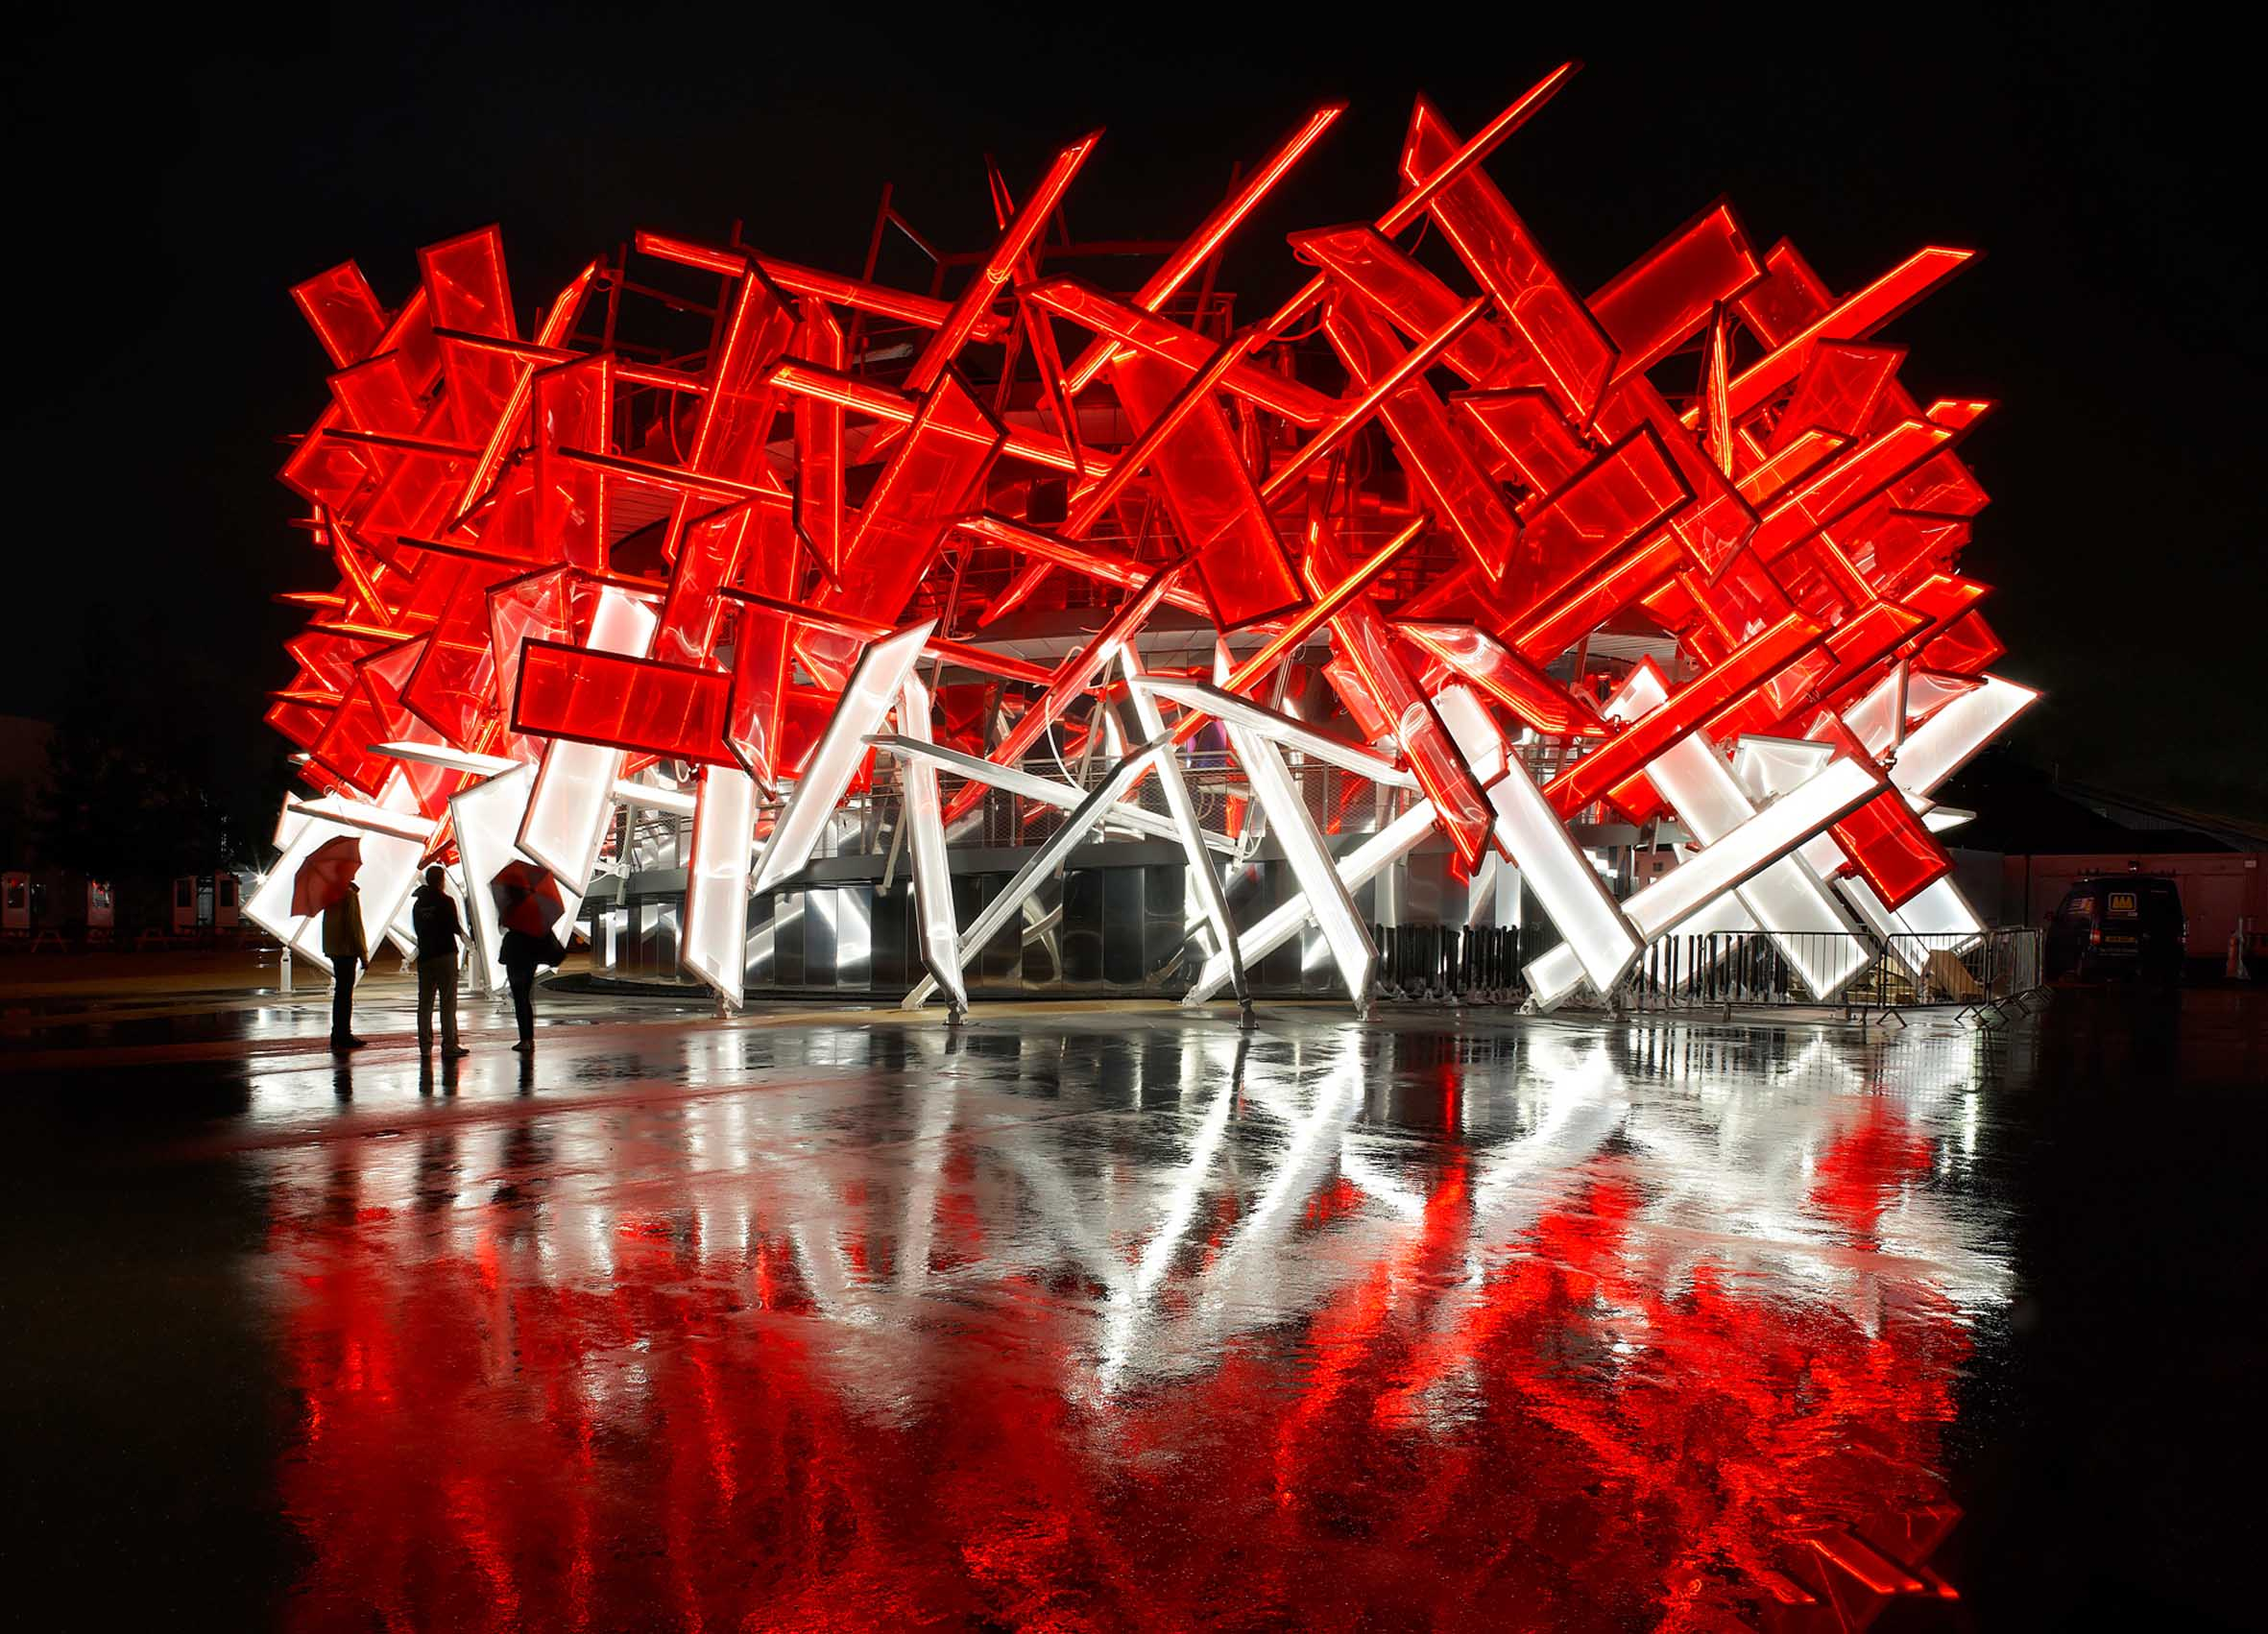 Coca Cola Beatbox Pavilion, Olympic park, London, UK - Olympic Games 2012, AKT II,Asif Kahn / Pernilla Ohrstedt